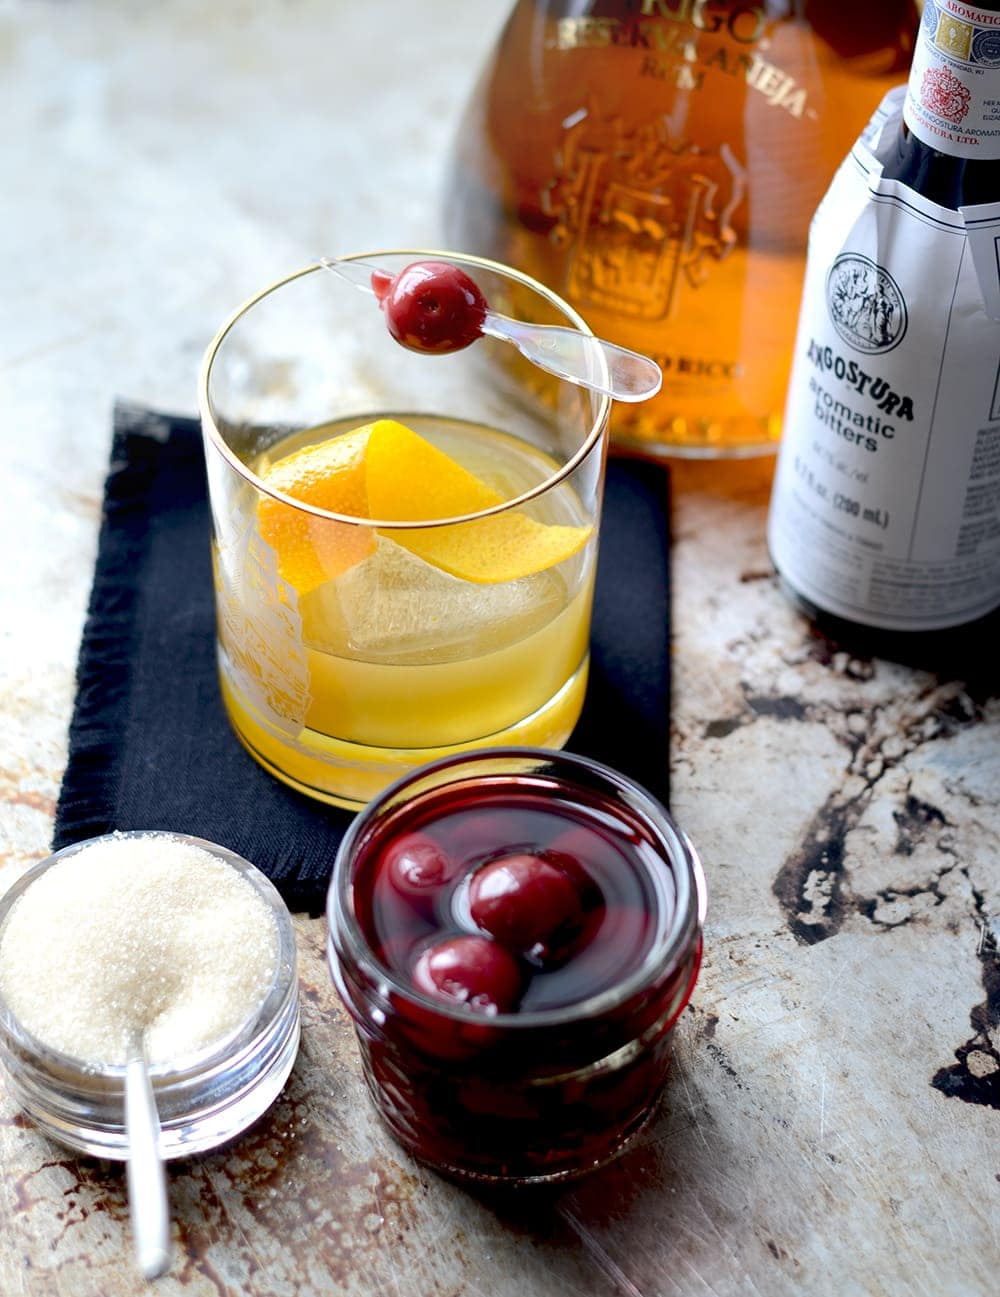 Discover San Juan hot spots and a recipe for the classic Rum Old Fashioned using one of Puerto Rico's fine aged rums. | vintagekitty.com